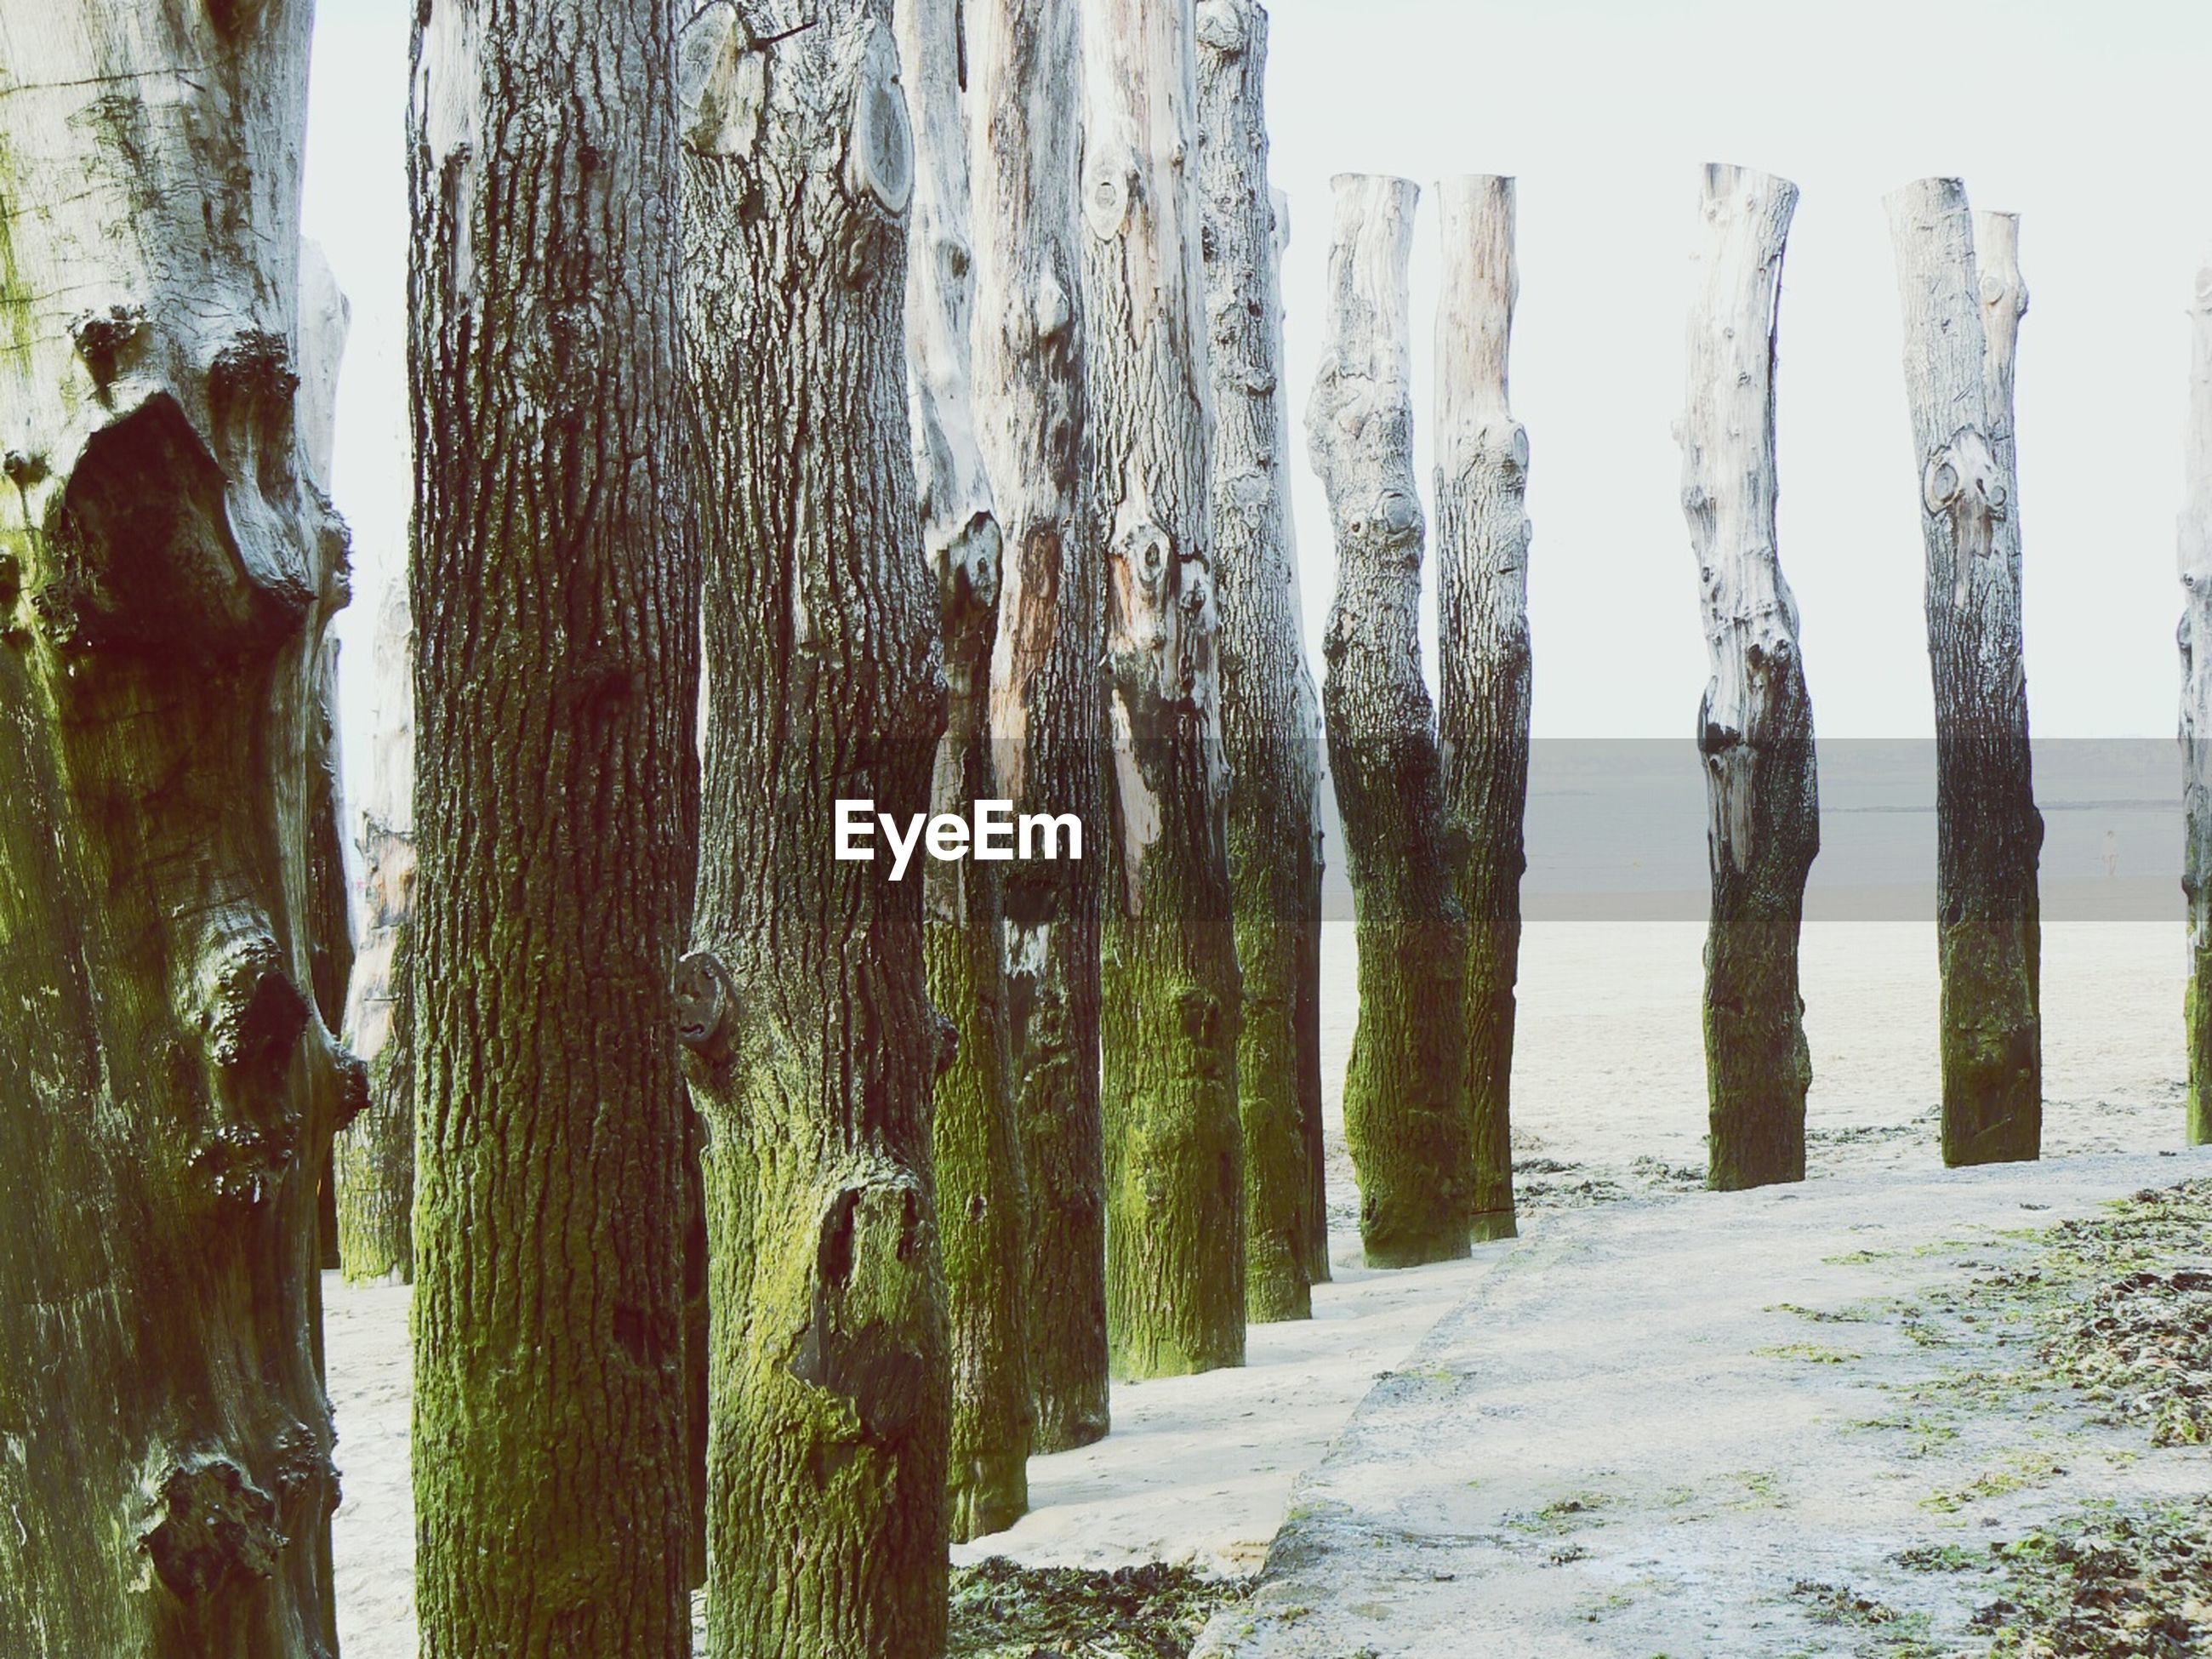 Row of wooden post on beach